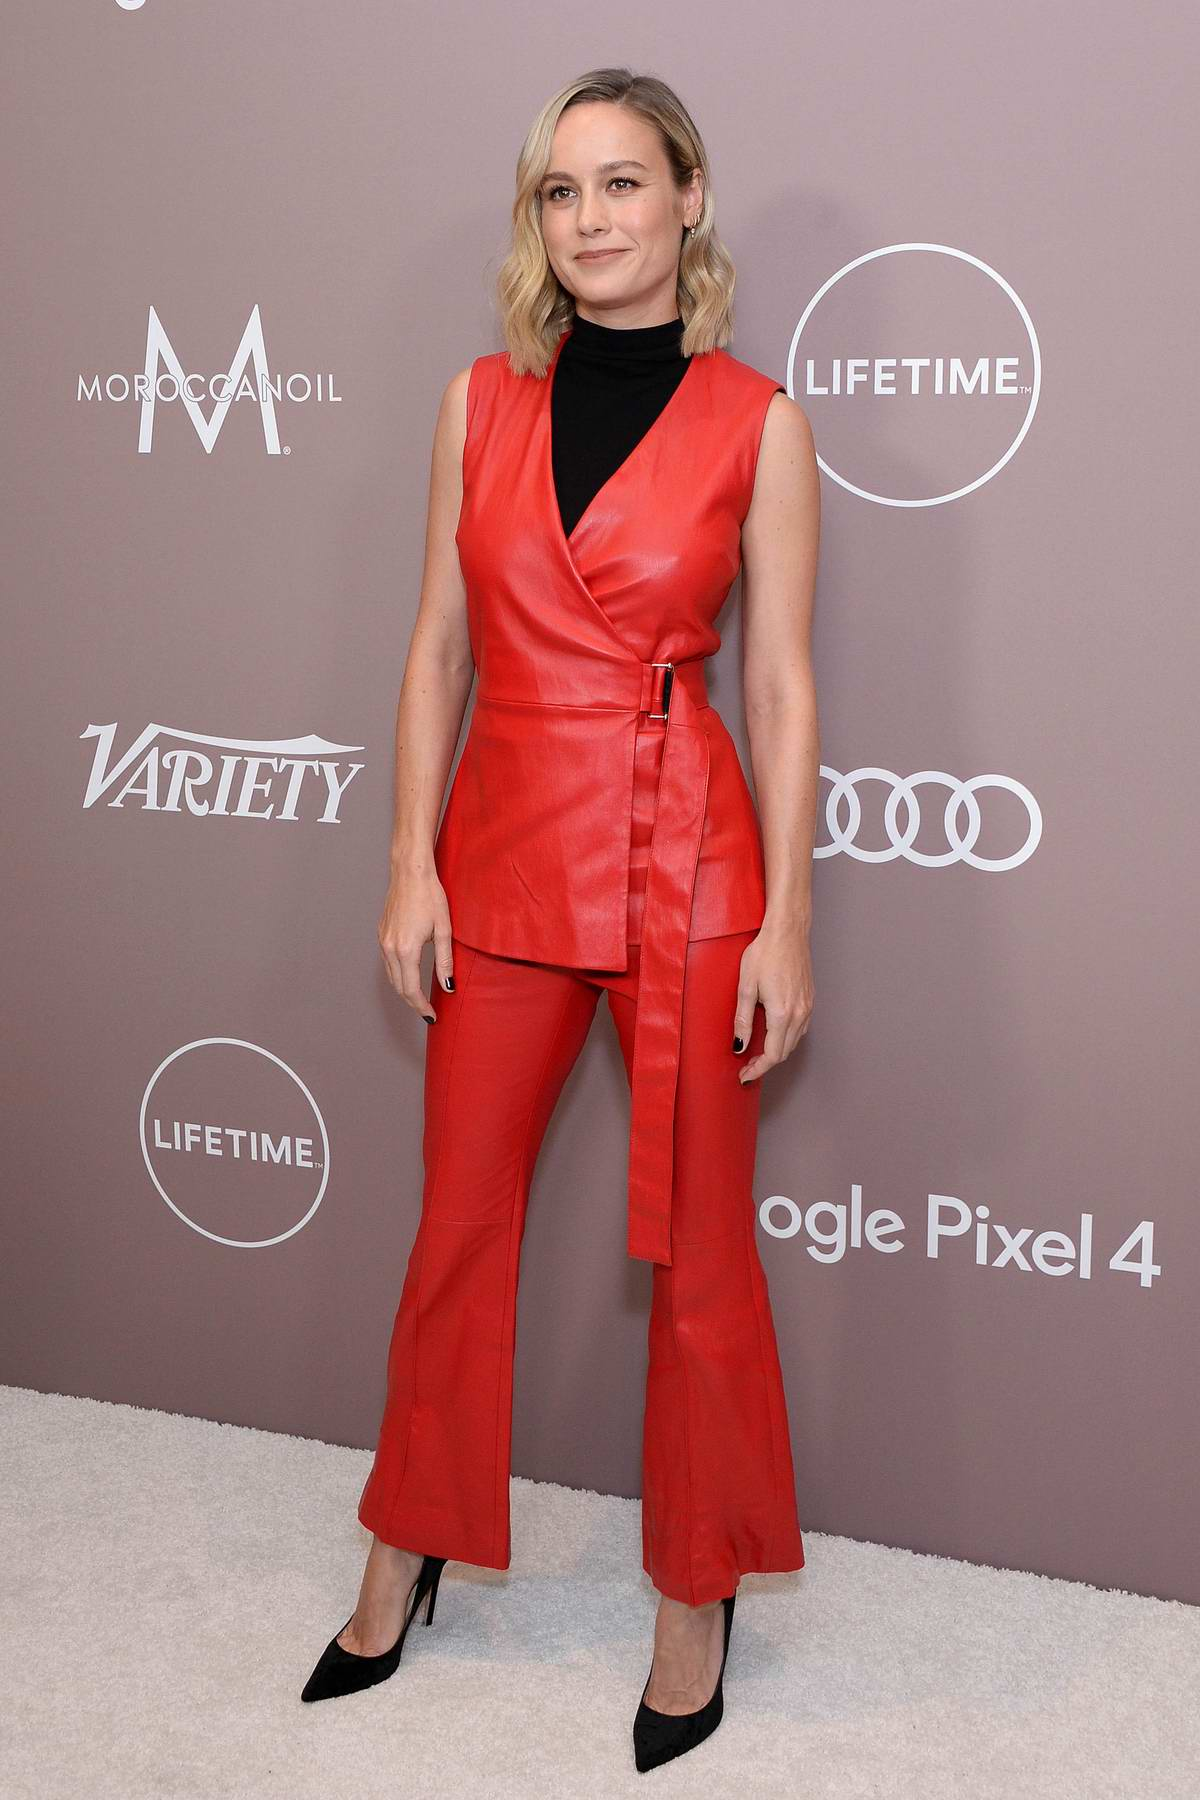 Brie Larson attends the Variety's 2019 Power of Women Presented by Lifetime at The Beverly Wilshire in Los Angeles